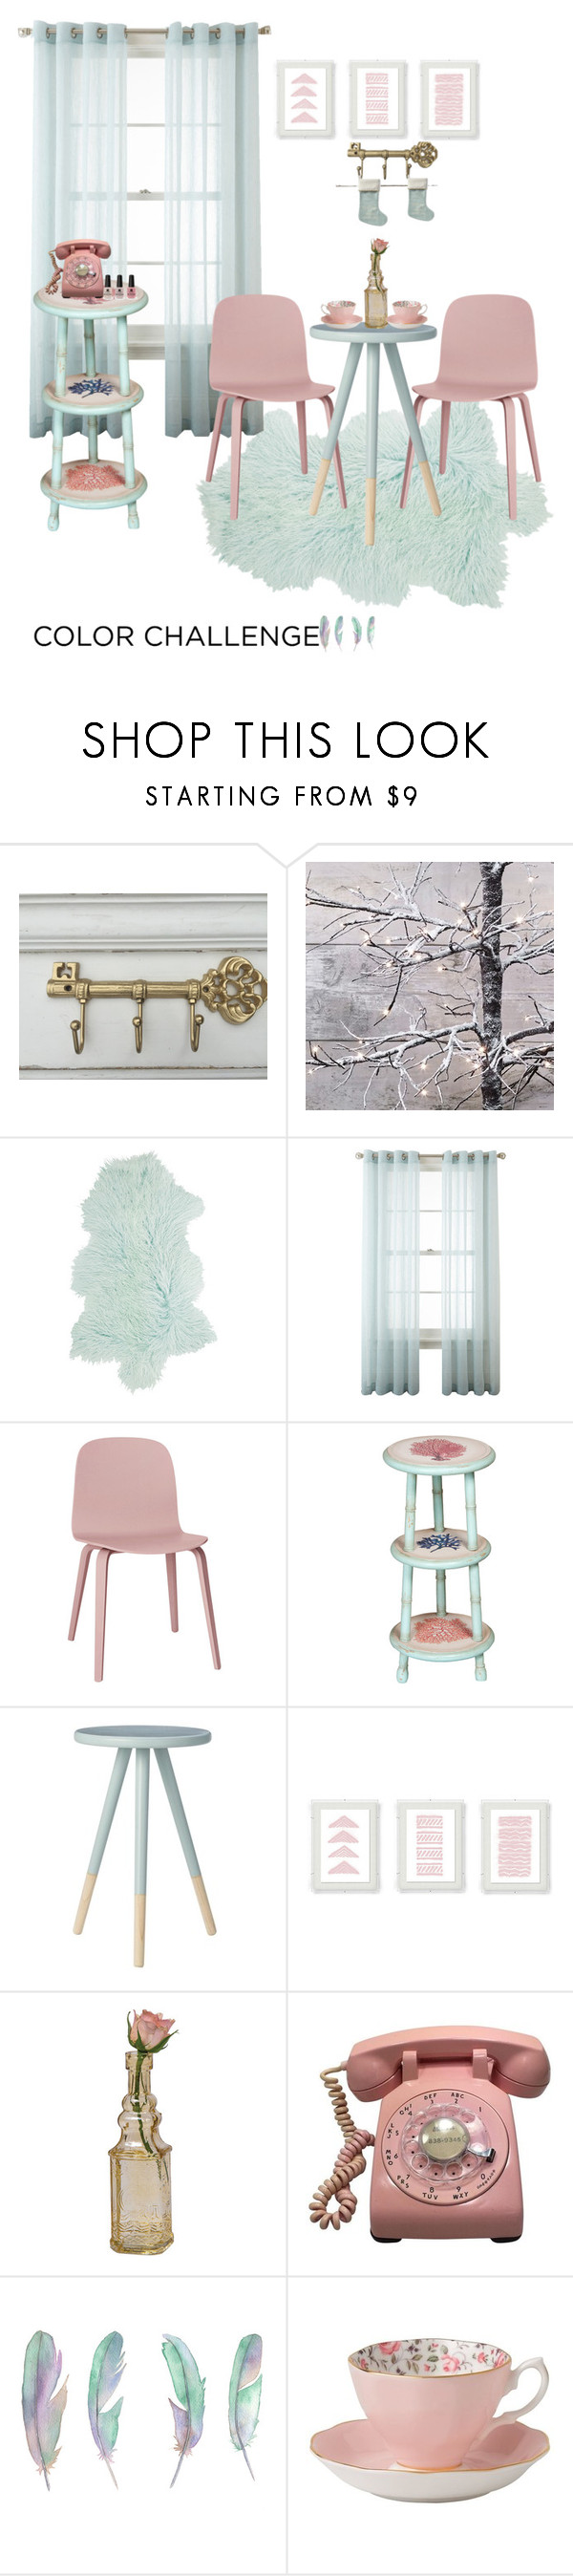 """""""all about baby color"""" by nabilathena ❤ liked on Polyvore featuring interior, interiors, interior design, home, home decor, interior decorating, Amara, Royal Velvet, Muuto and Coral Blue"""